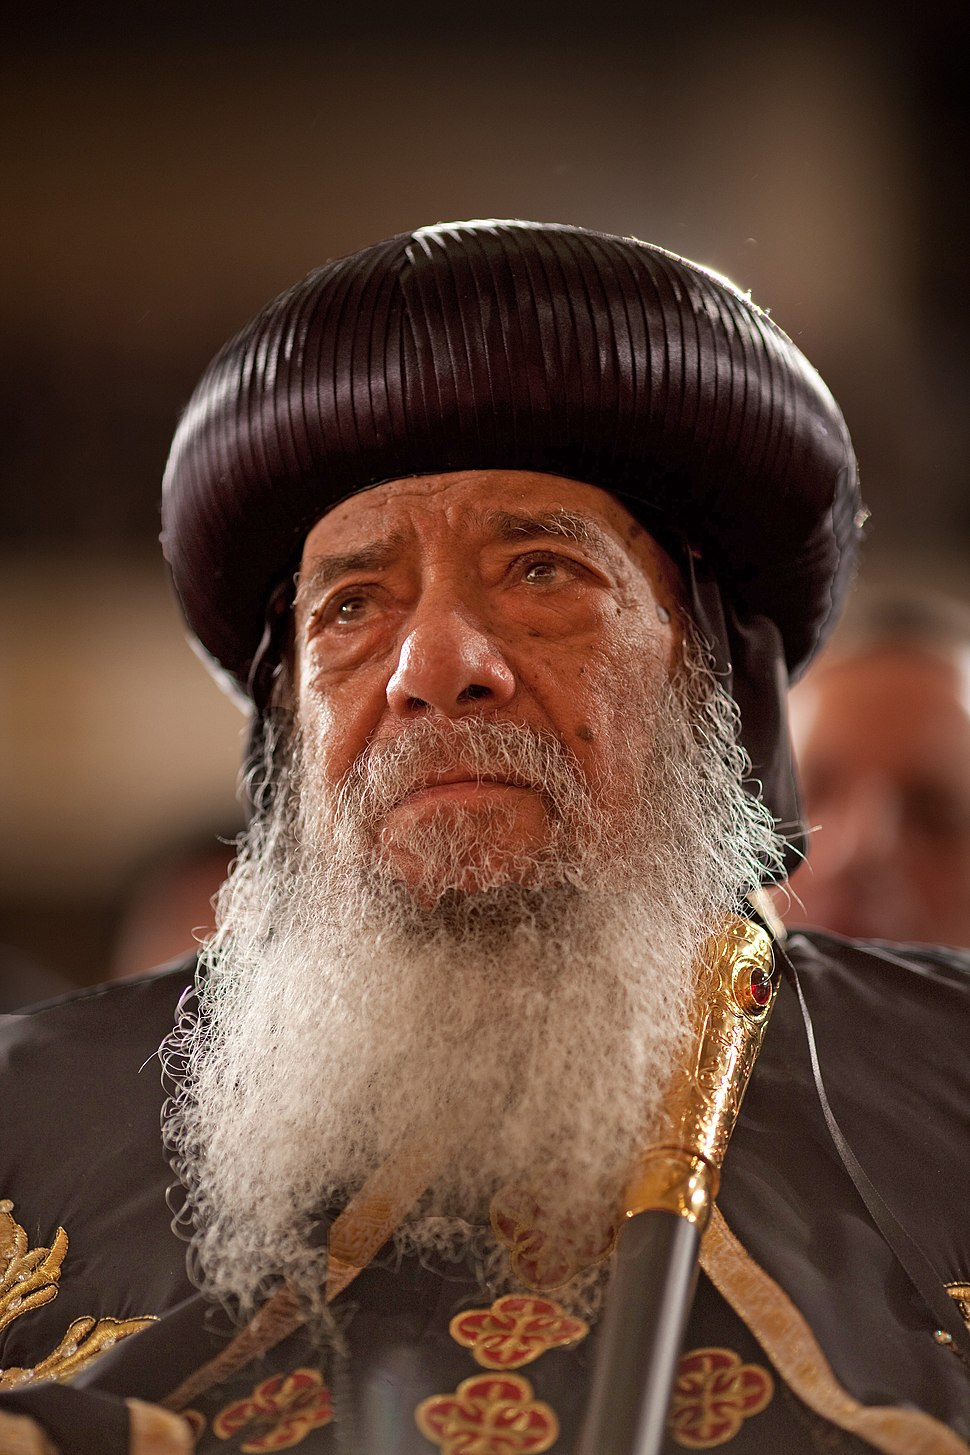 Pope Shenouda III of Alexandria by Chuck Kennedy (Official White House Photostream)